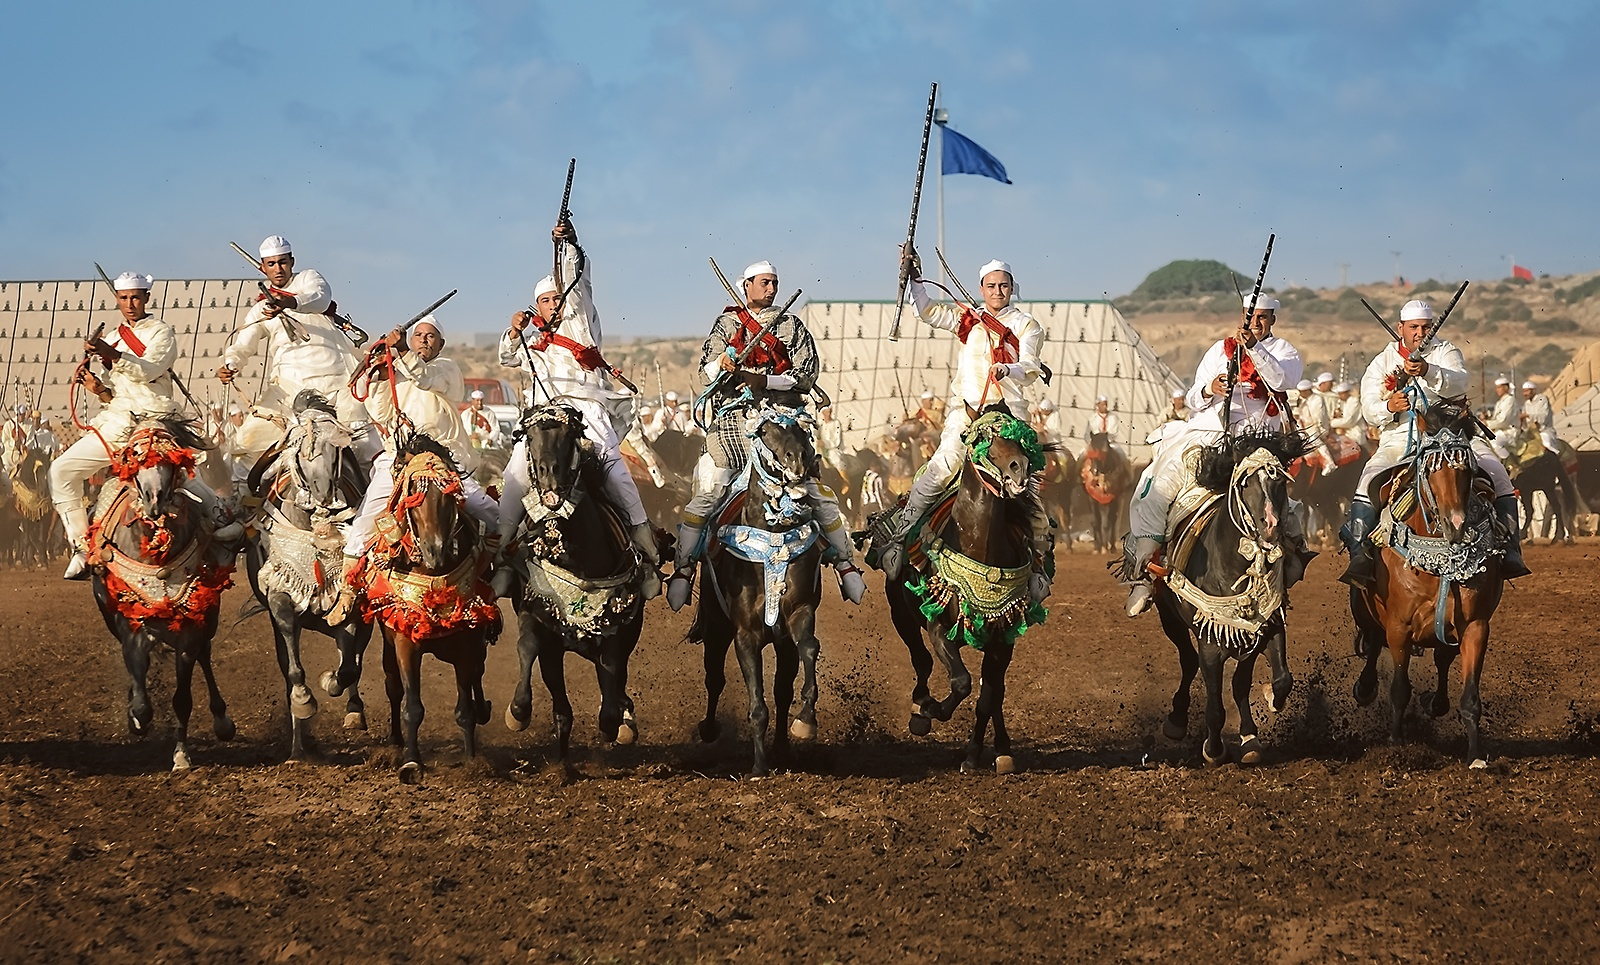 Photo in Travel #travel #travel photography #morocco #maroc #people #faces #action photography #barb horses #horses #moroccan horses #clouds #africa #north africa #moroccan #berber people #arab people